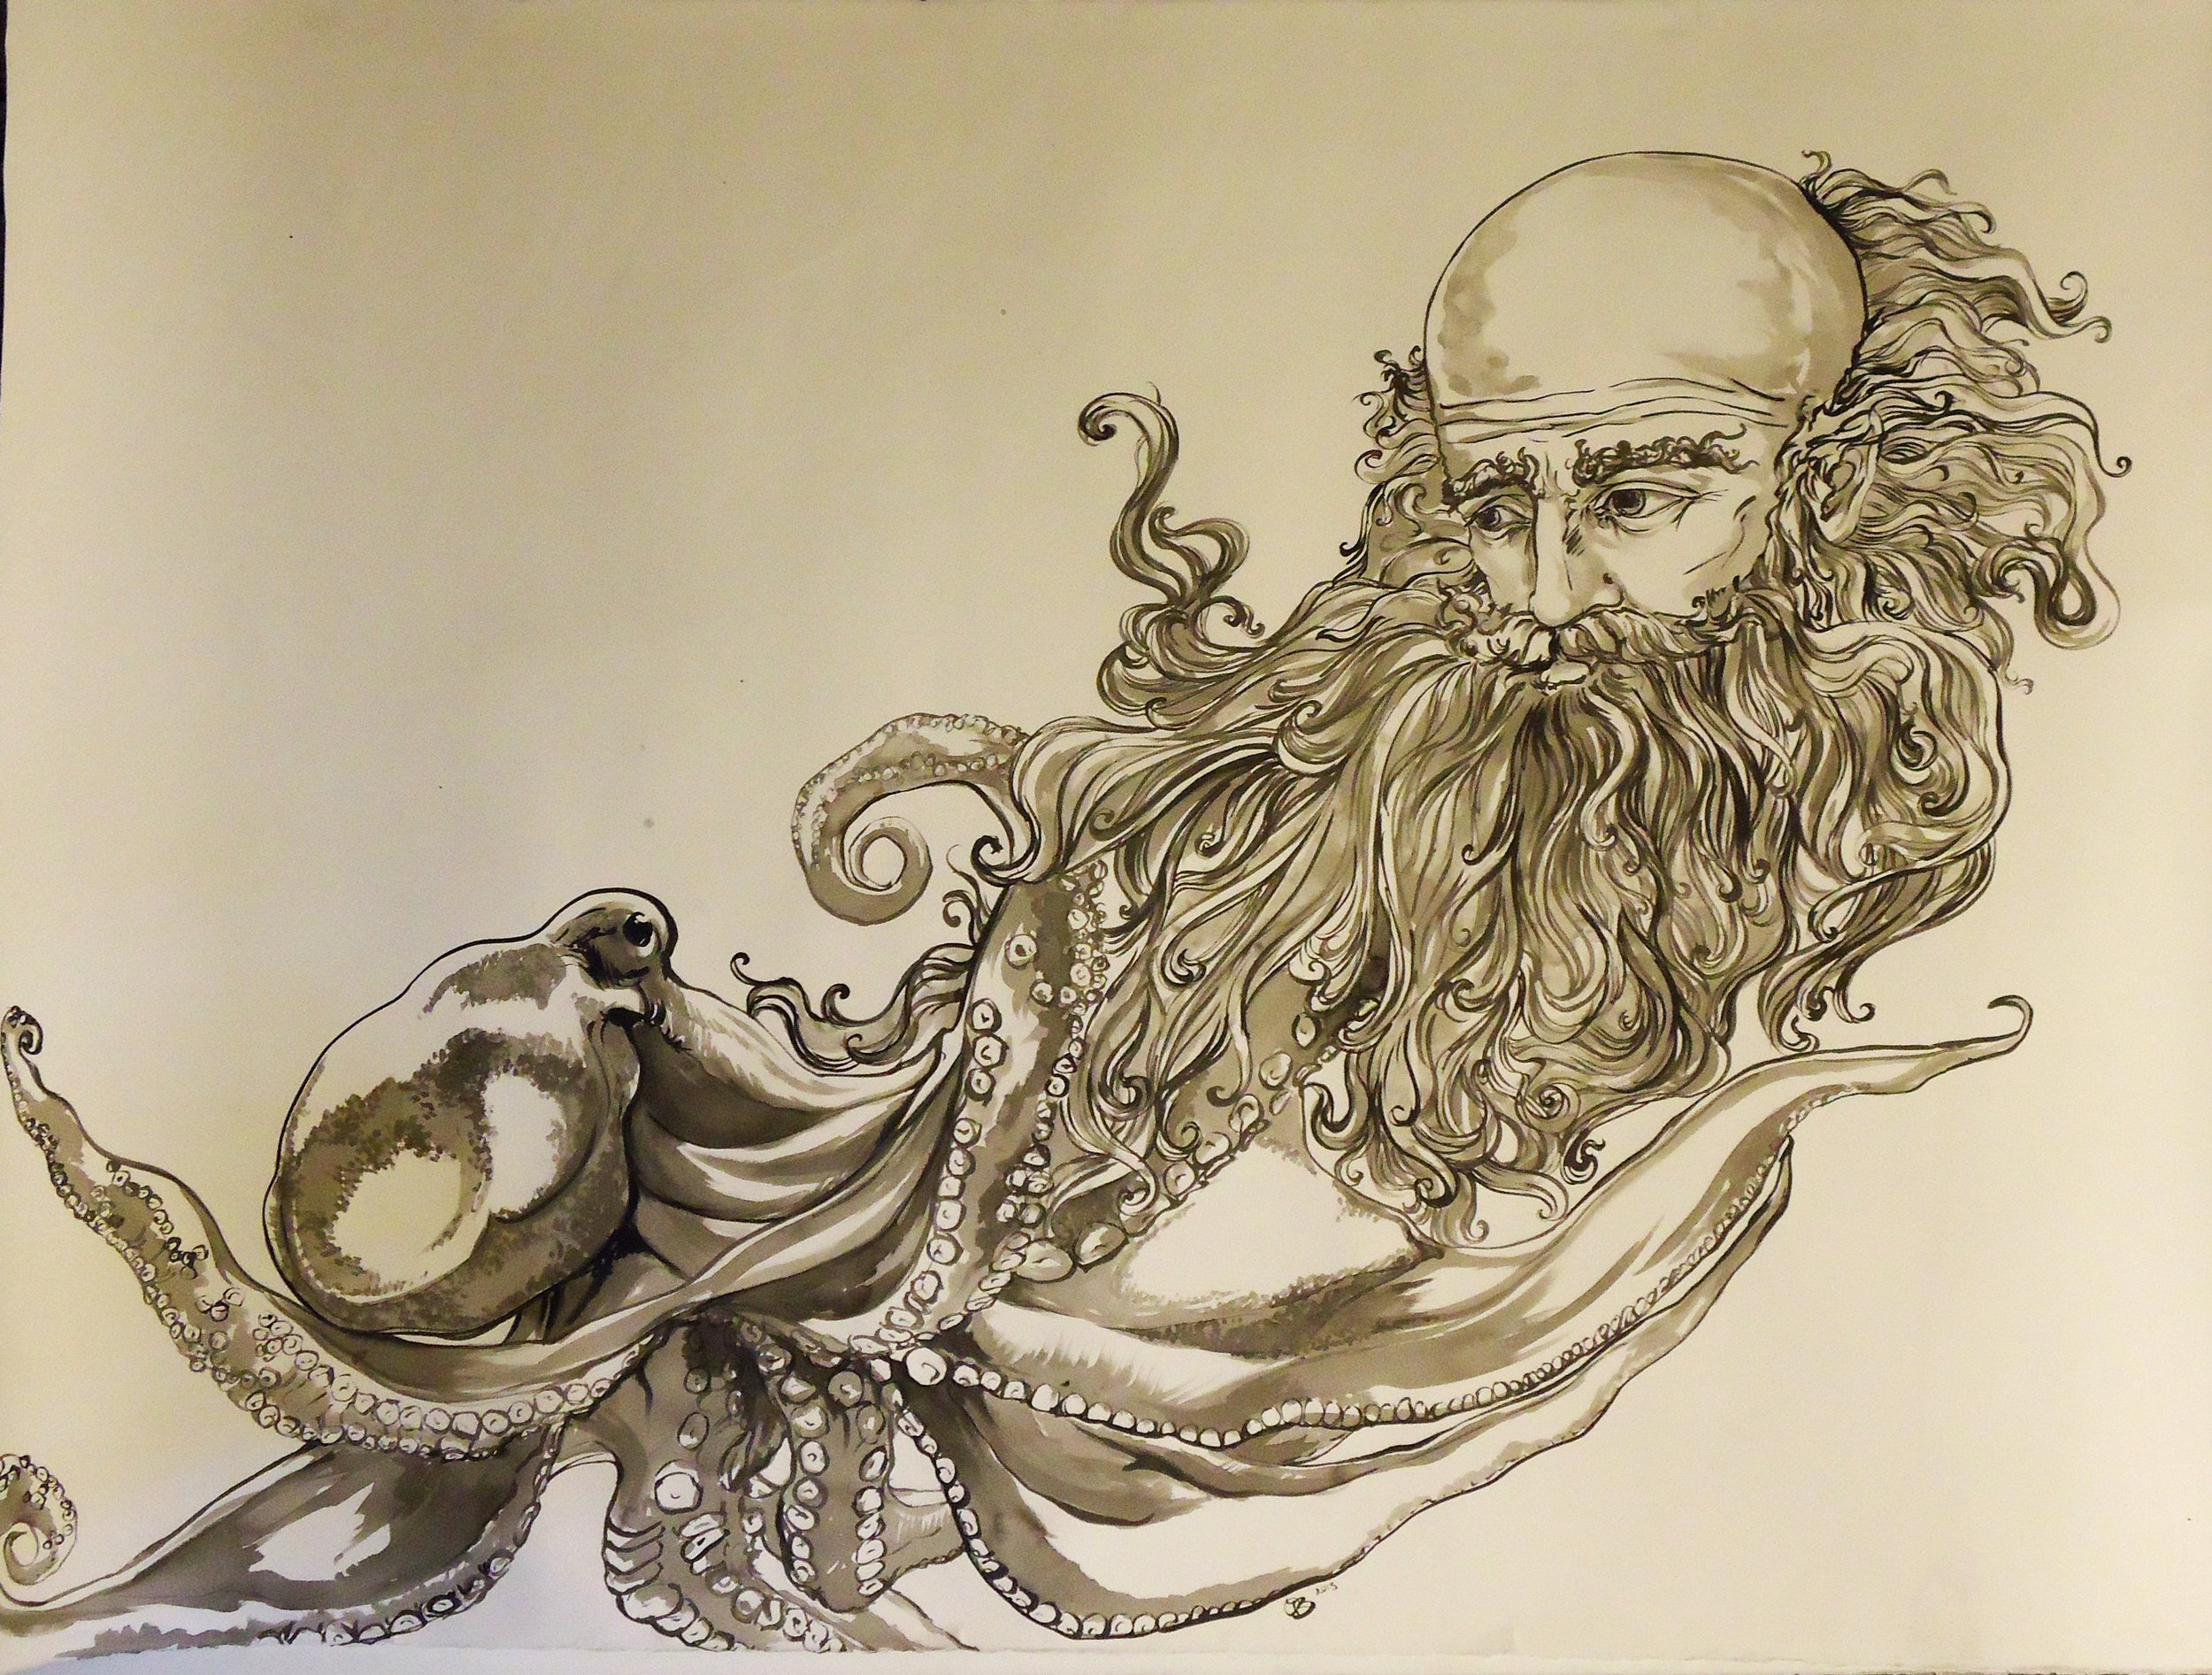 """Mr. Van Winkle was surprised to see an octopus in those parts of the Catskills. Ink on paper.42.5 x 56"""""""